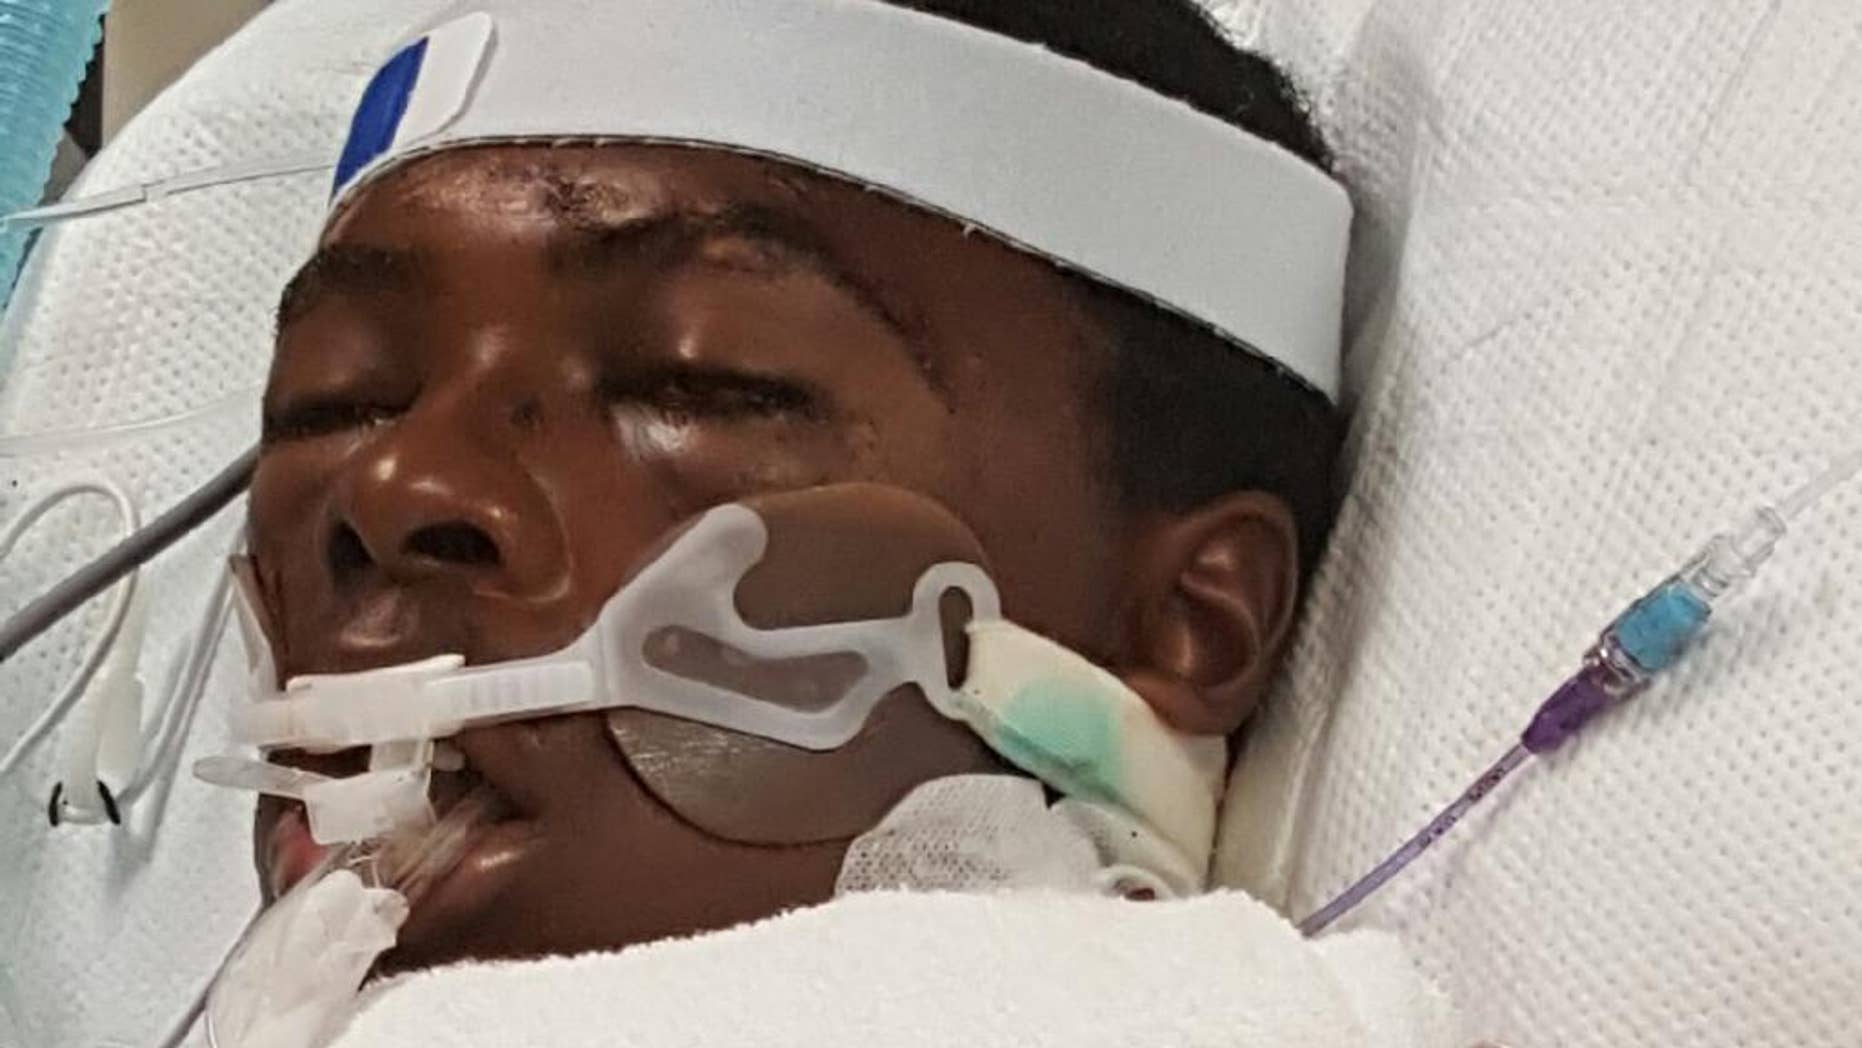 FILE - This photo provided by Prinice Thomas shows his nephew Tawon Boyd in the hospital after he was punched and held to the ground by Baltimore County police officers after a confrontation outside his home on Sunday, Sept. 18, 2016. The Maryland medical examiner's office said Boyd's death after a violent struggle with police was accidental and likely caused by drug use. Boyd's family attorney, A. Dwight Pettit said he'll have an independent expert review the autopsy and hospital records. (Prinice Thomas via AP, File)